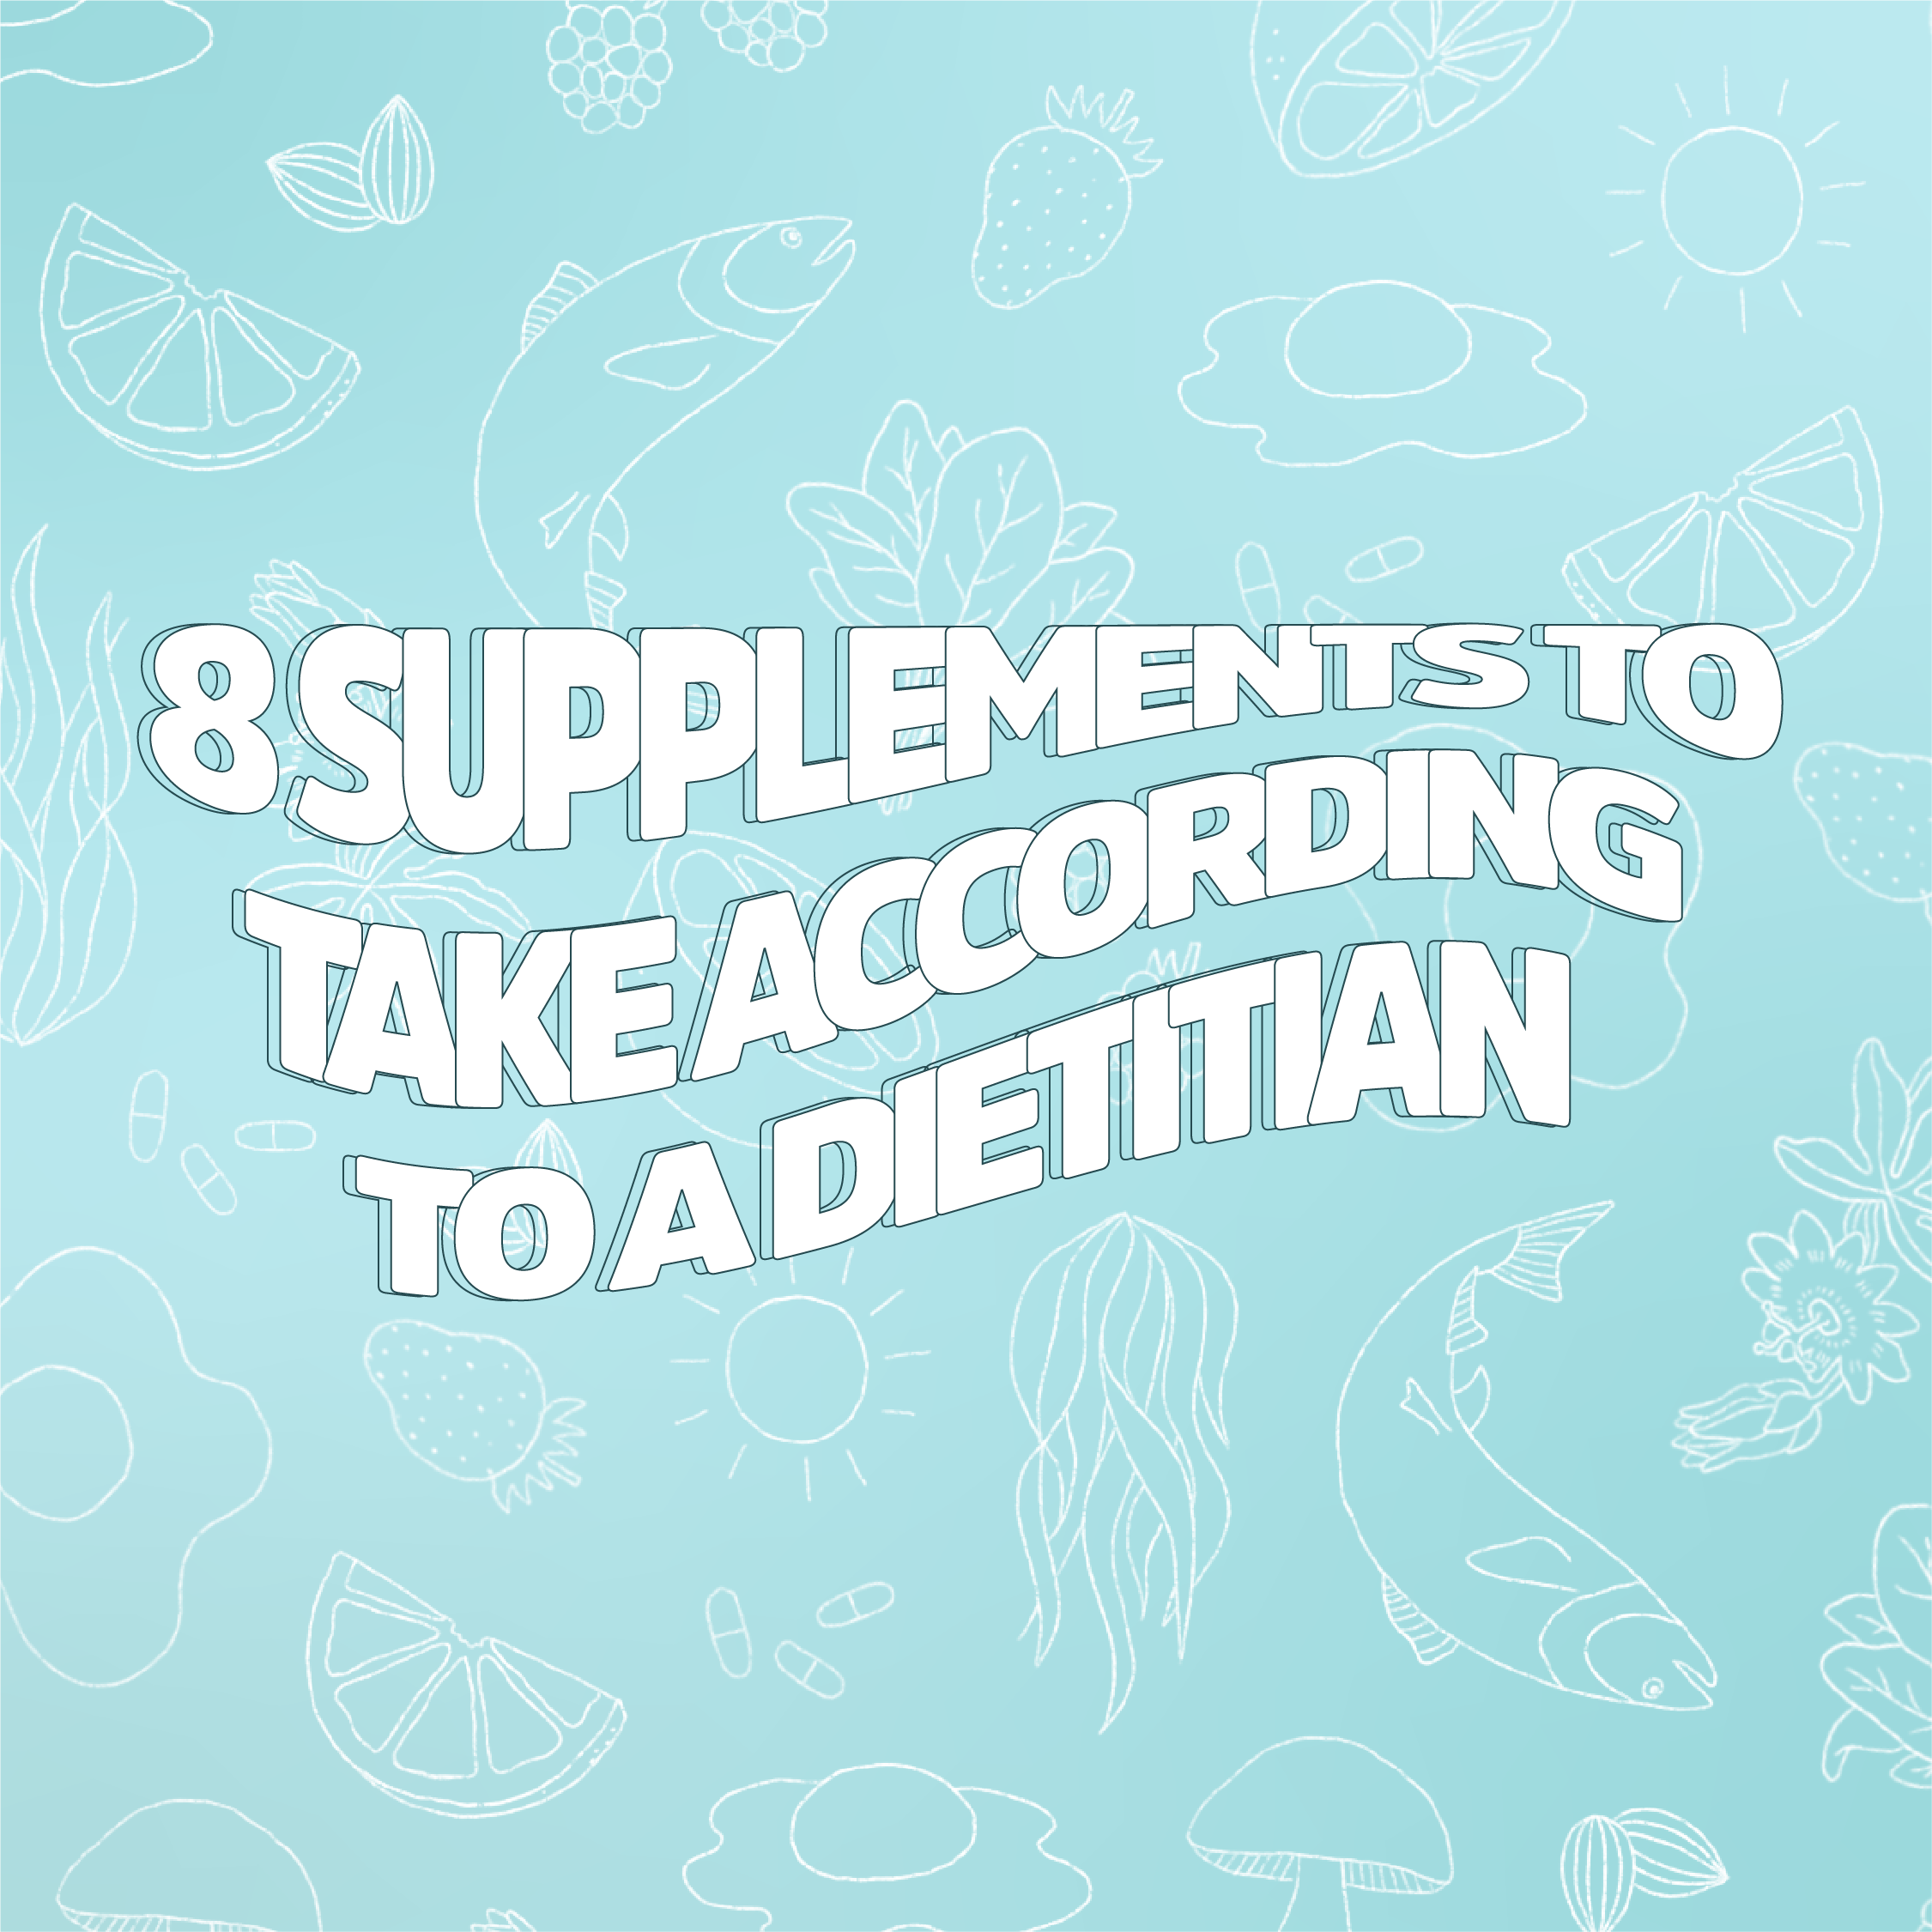 8 supplements to take, according to a dietician